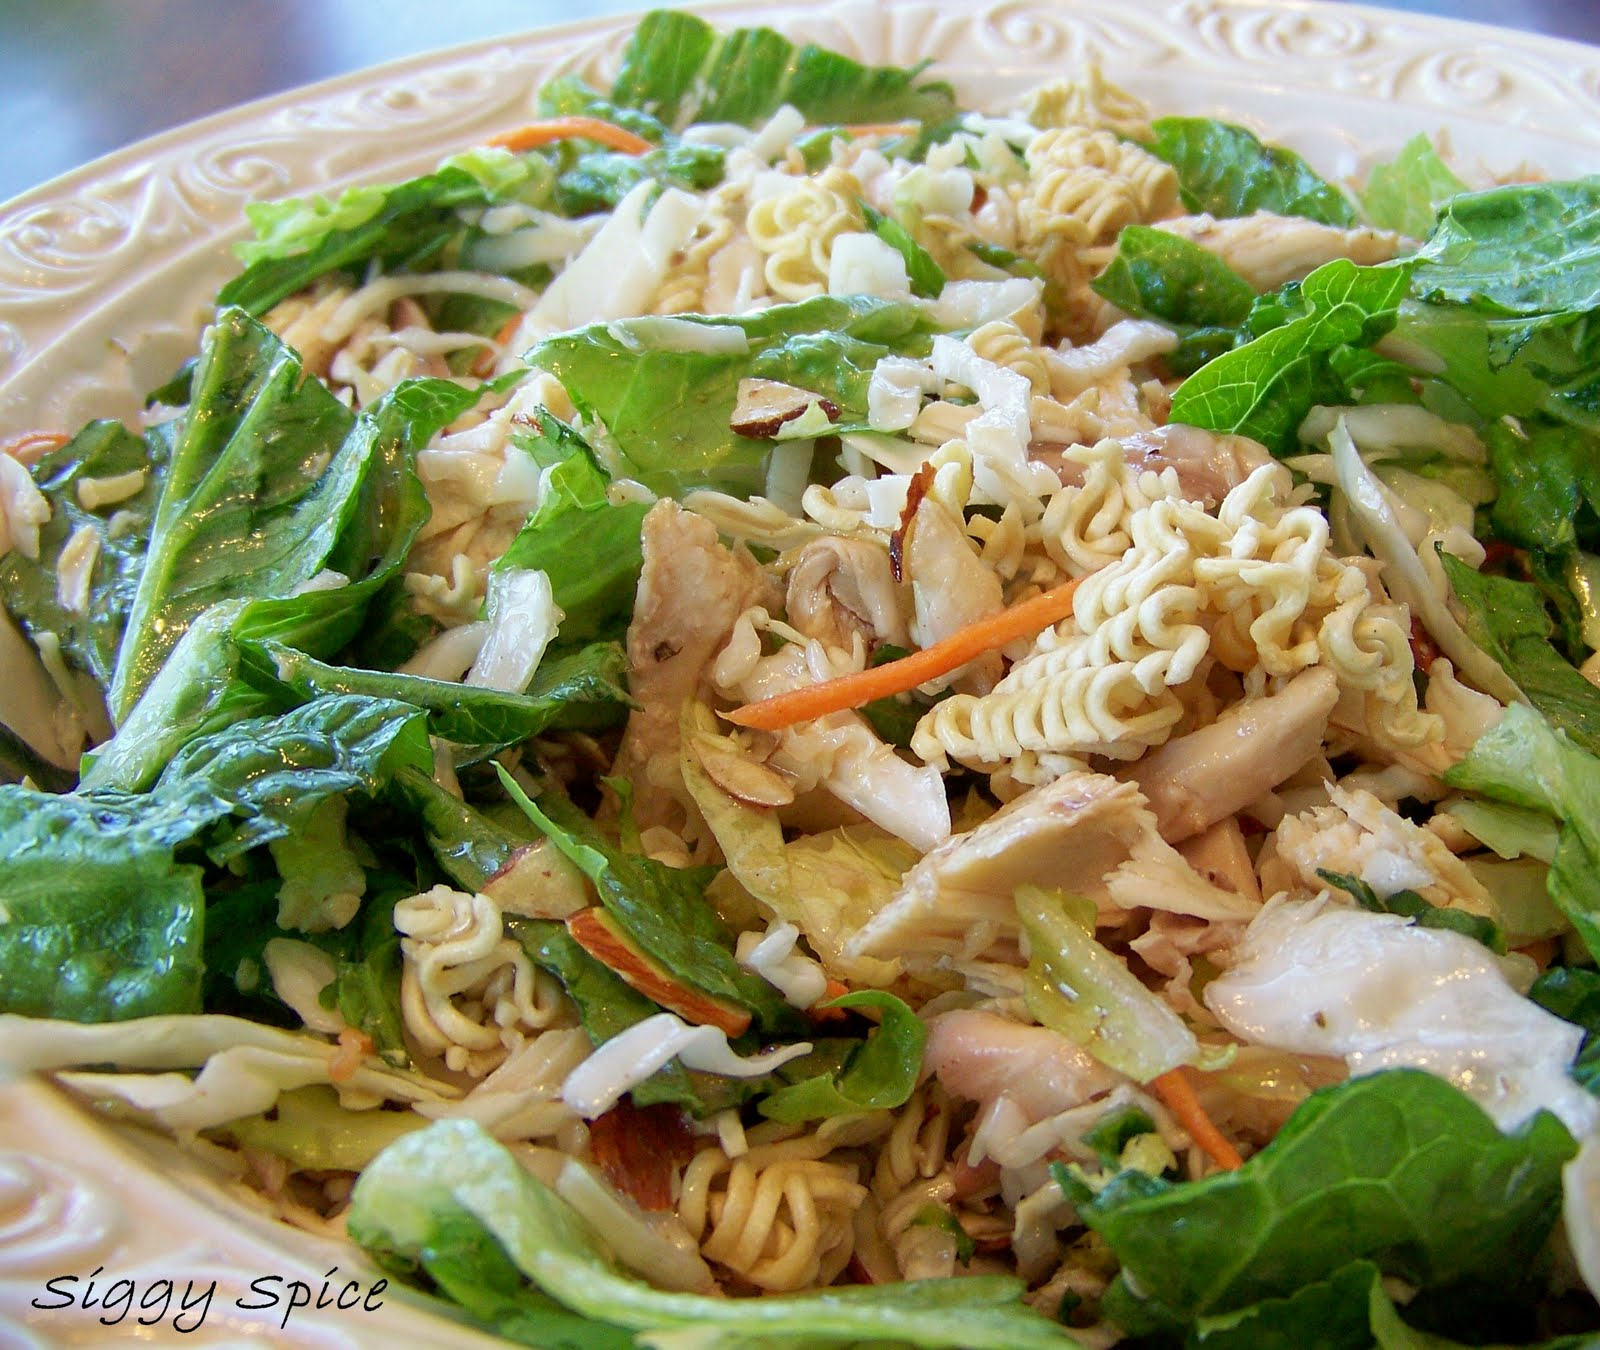 Siggy Spice: Asian Chicken Salad